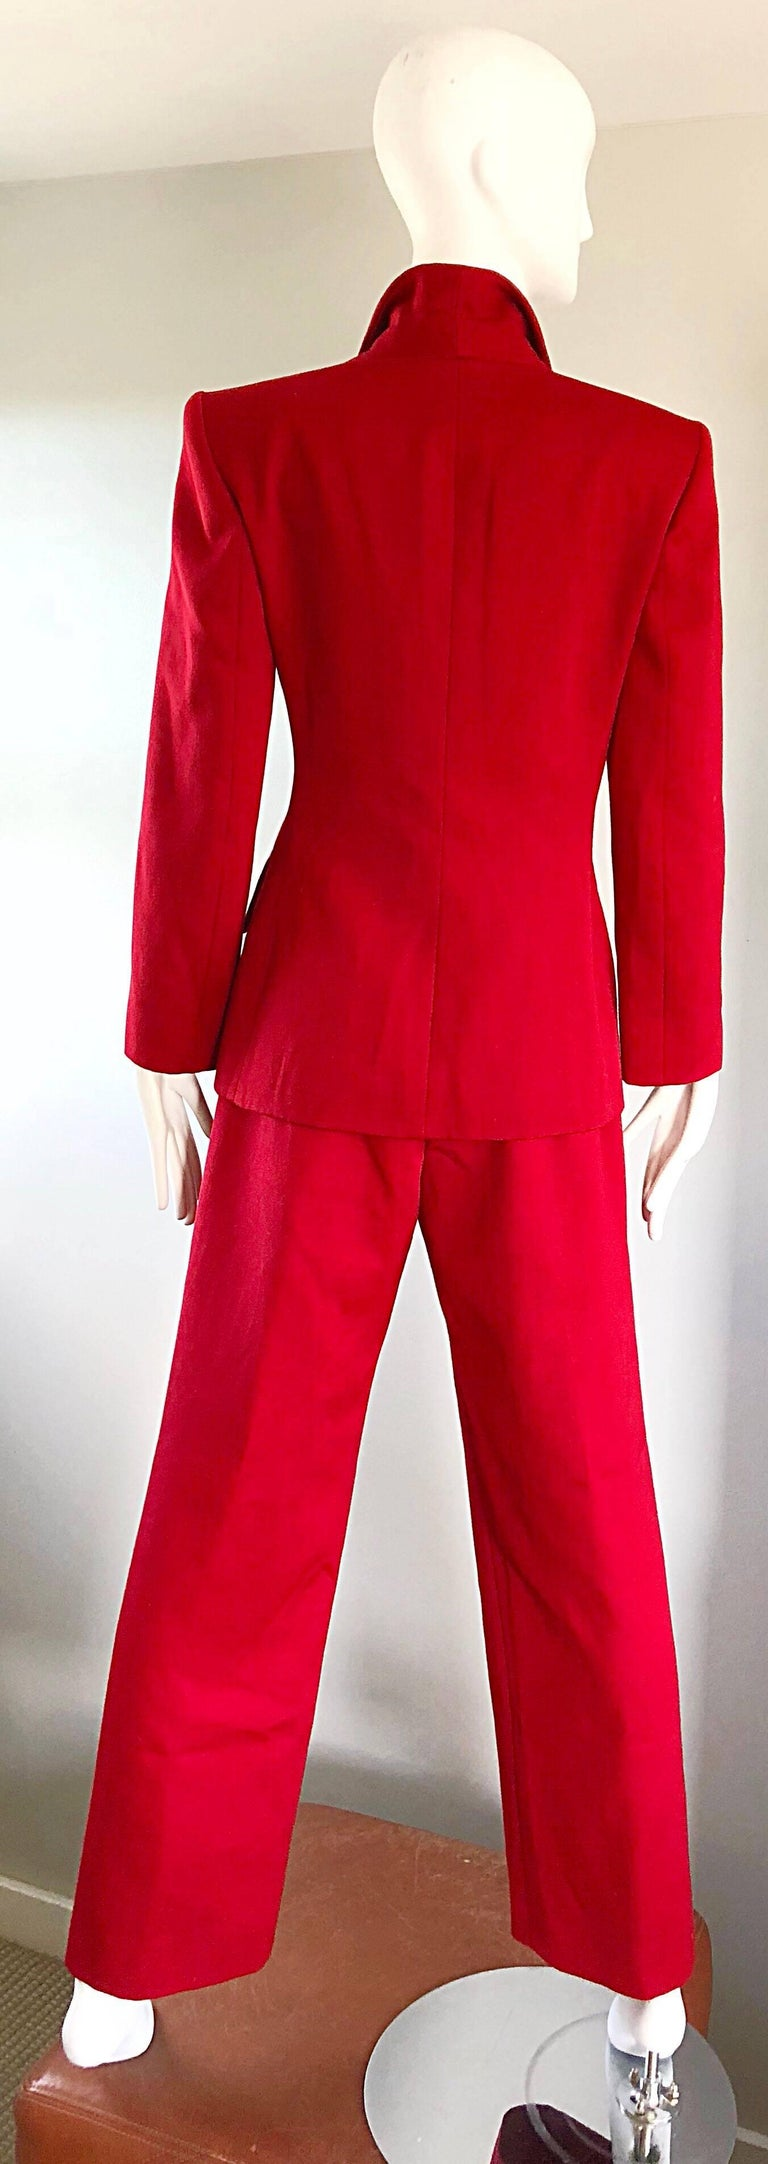 Isaac Mizrahi Vintage 1990s Lipstick Red Wide Leg Wool Le Smoking 90s Pants Suit 4